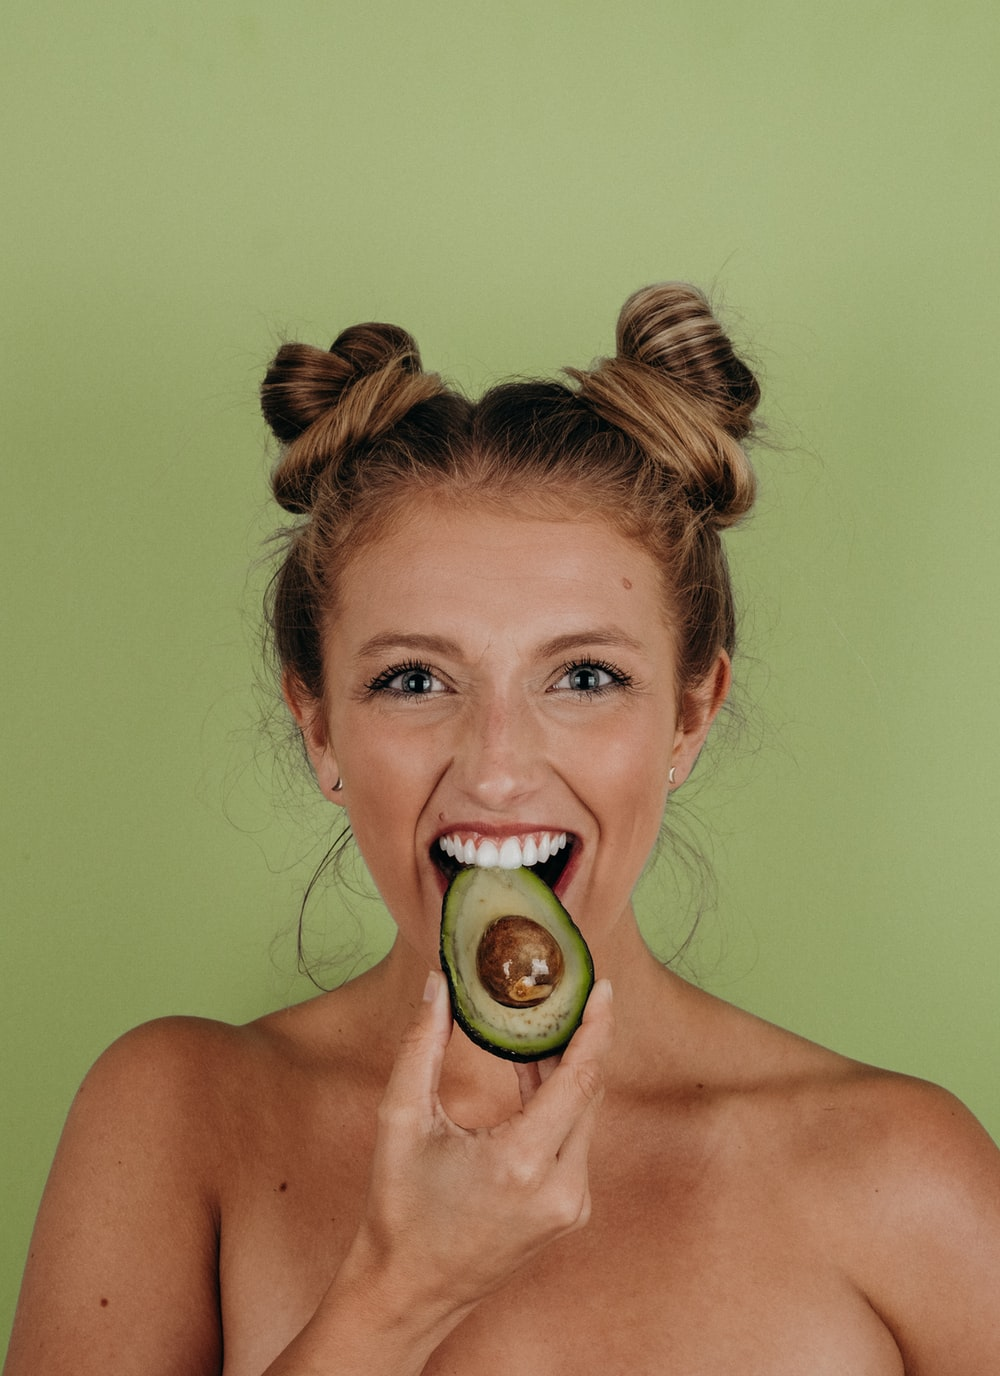 woman holding sliced avocado